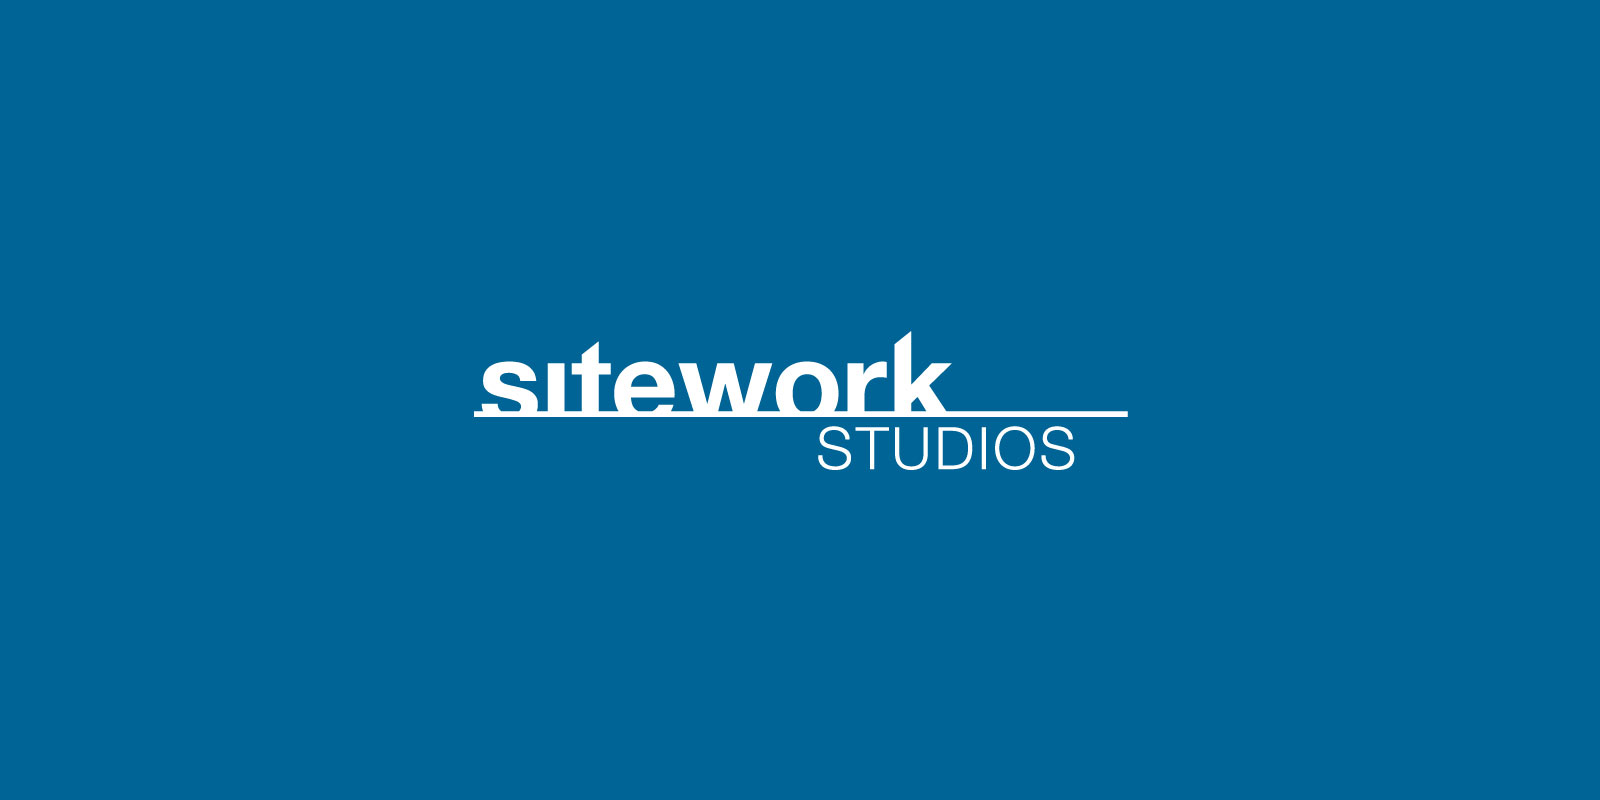 Sitework Studios logo on a royal blue background